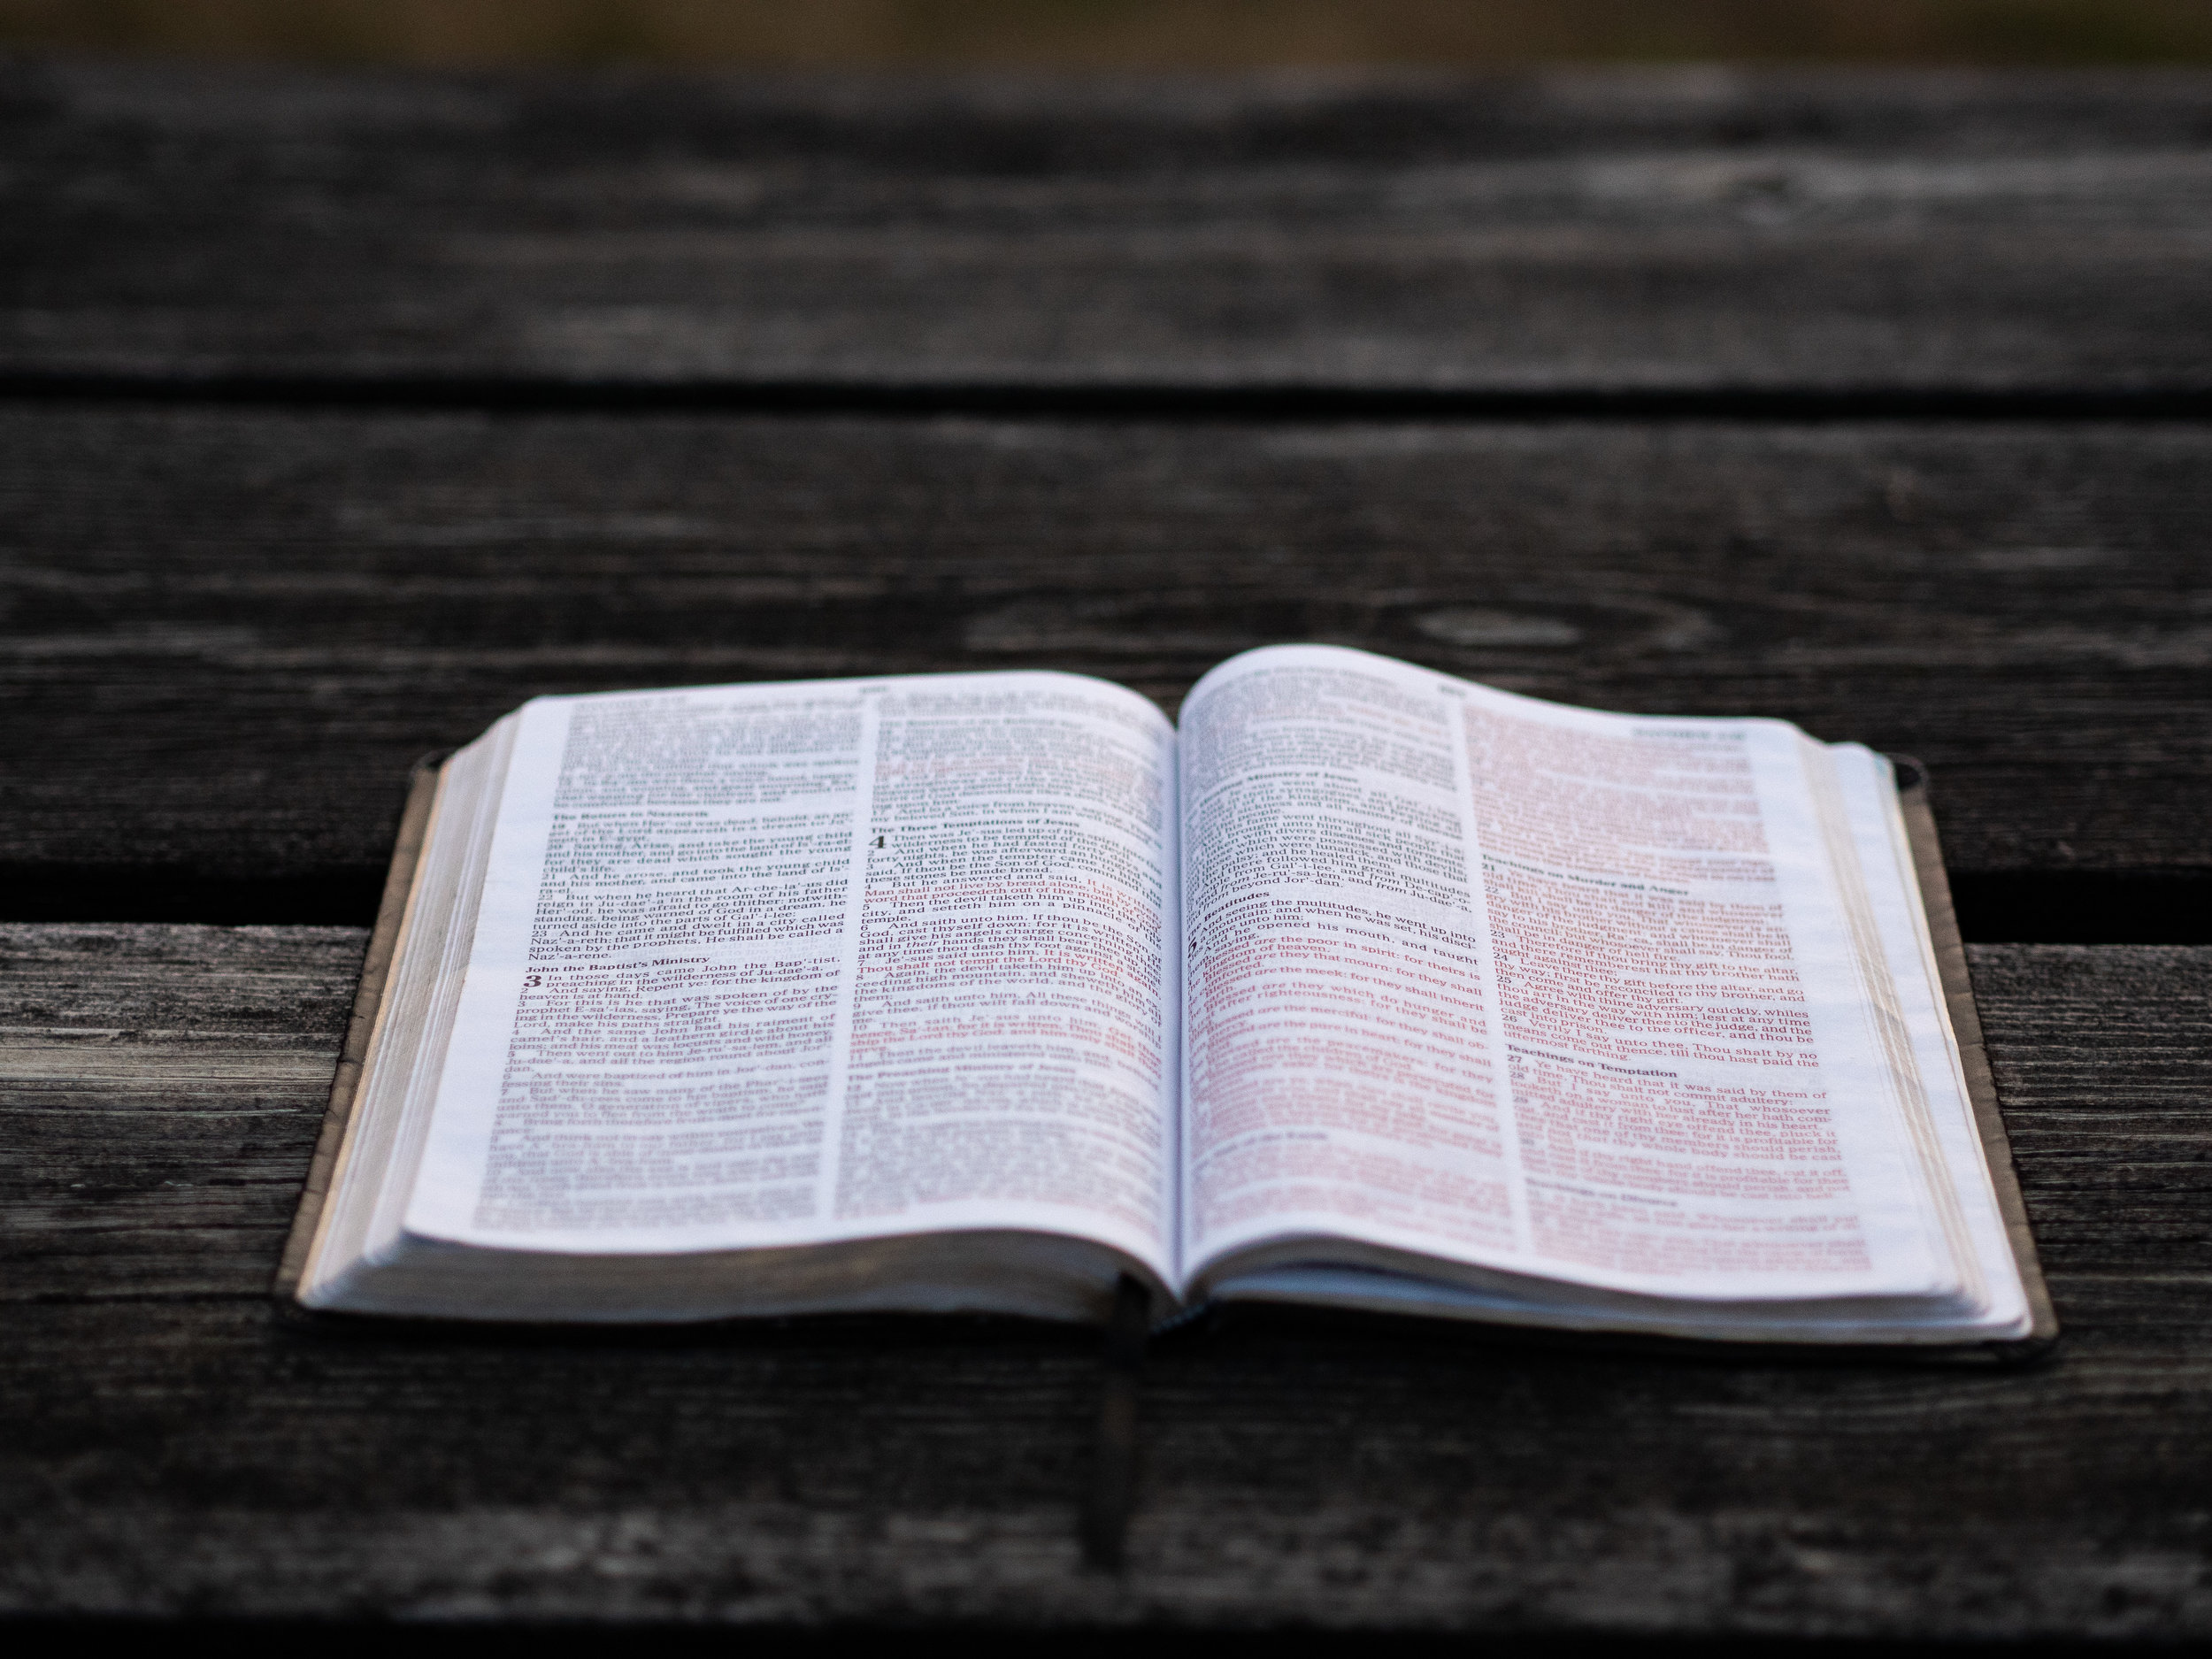 """- """"All Scripture is God-breathed and is useful for teaching, rebuking, correcting and training in righteousness, so that the servant of God may be thoroughly equipped for every good work.""""- 2 Timothy 3:16-17"""